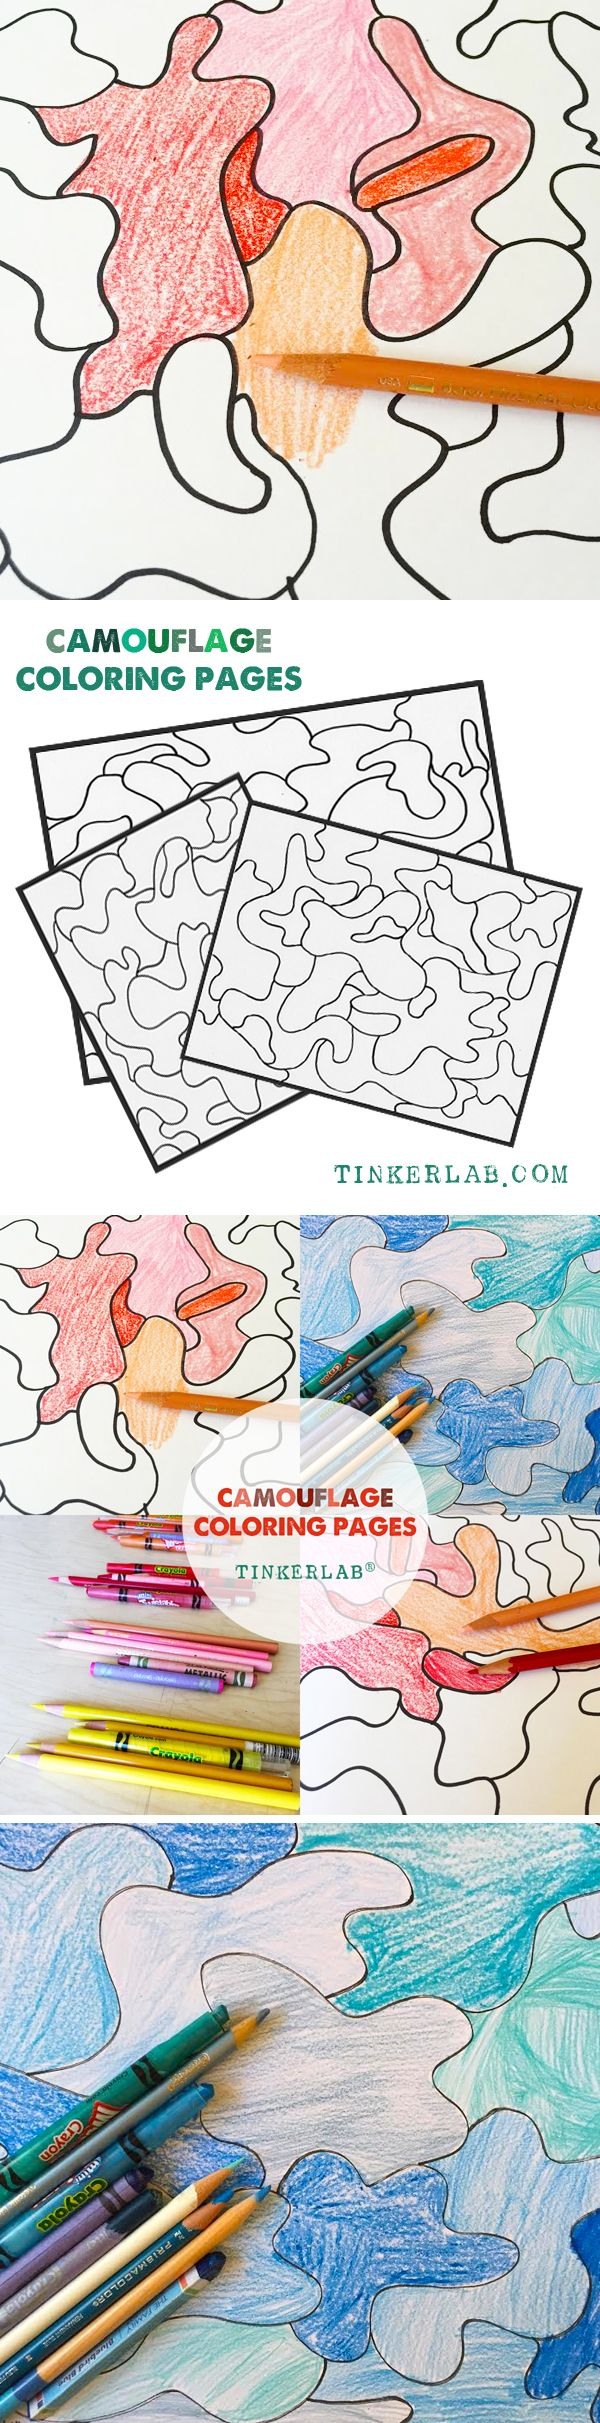 Camouflage Coloring Pages Growing Creative Kids Coloring Pages